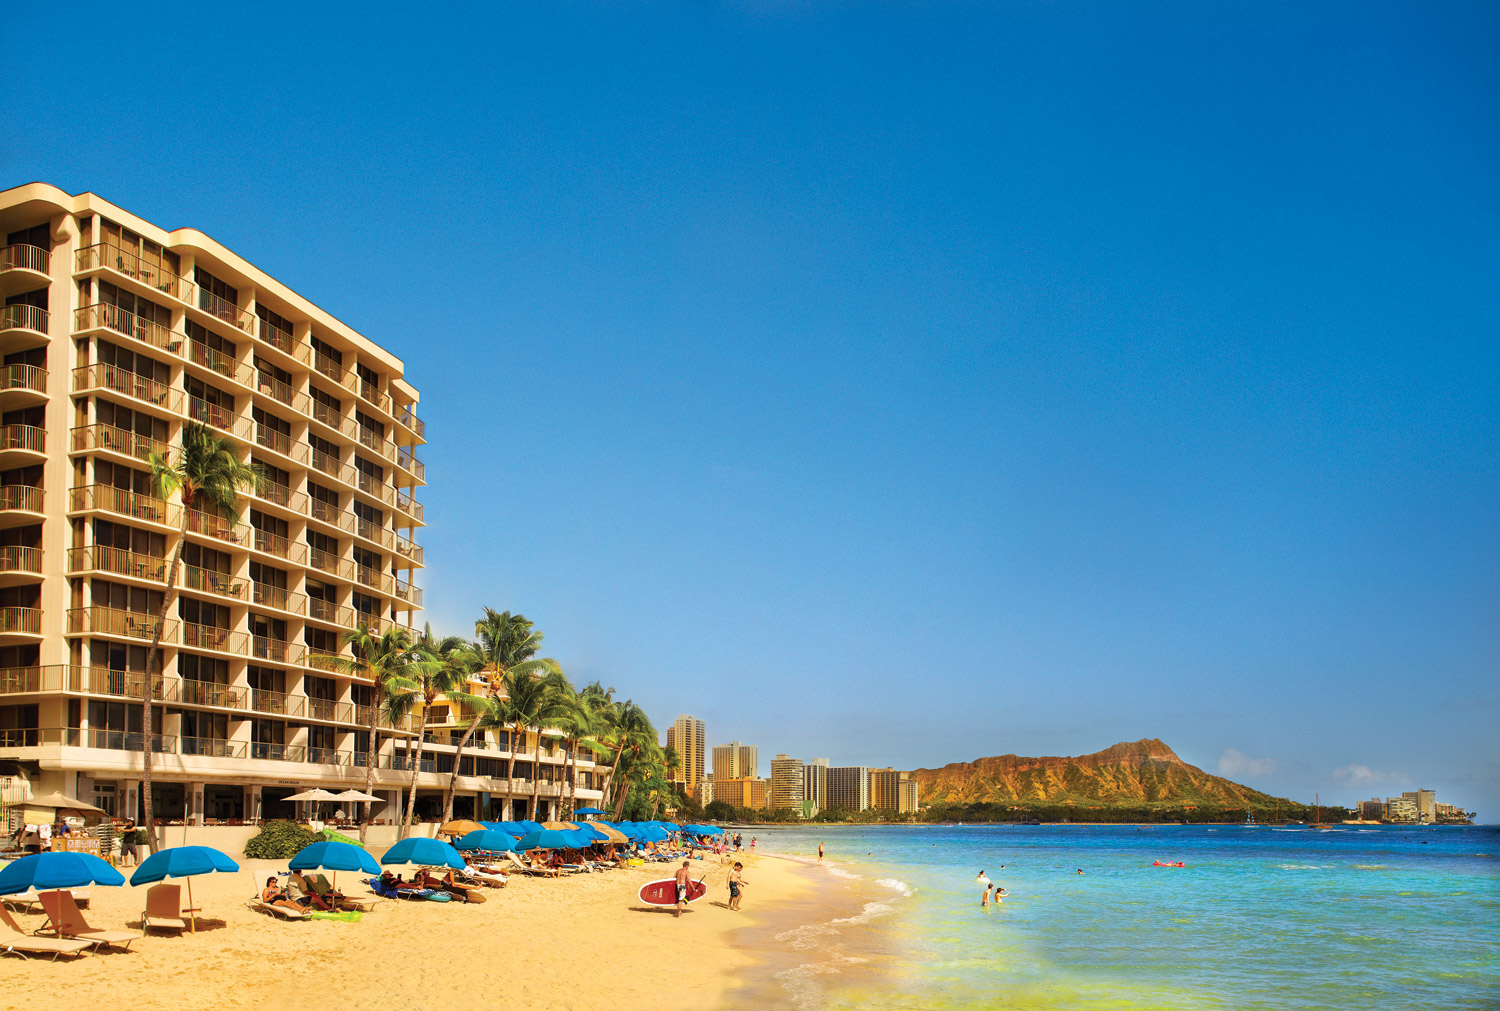 Travel agents can win a 4 night stay for two at outrigger reef waikiki beach